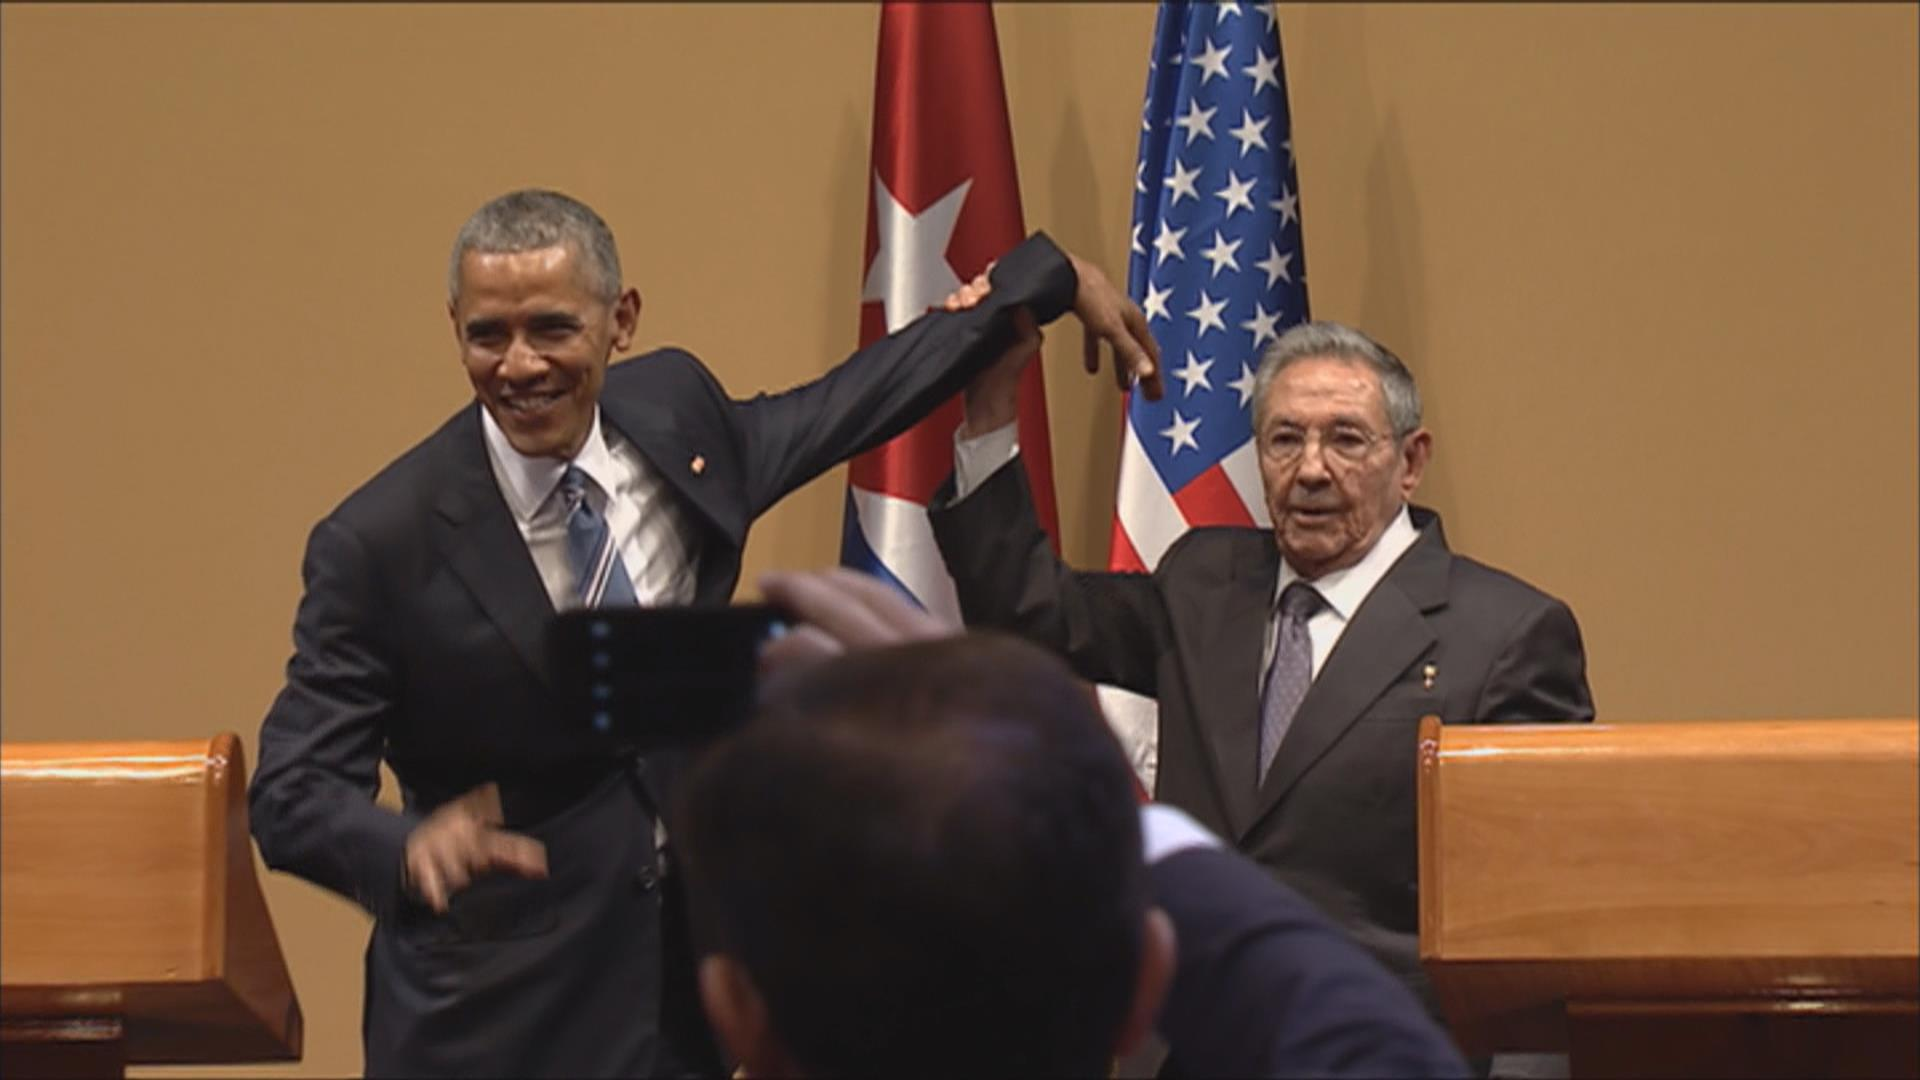 Awkward Gesture Ends Obama News Conference in Cuba